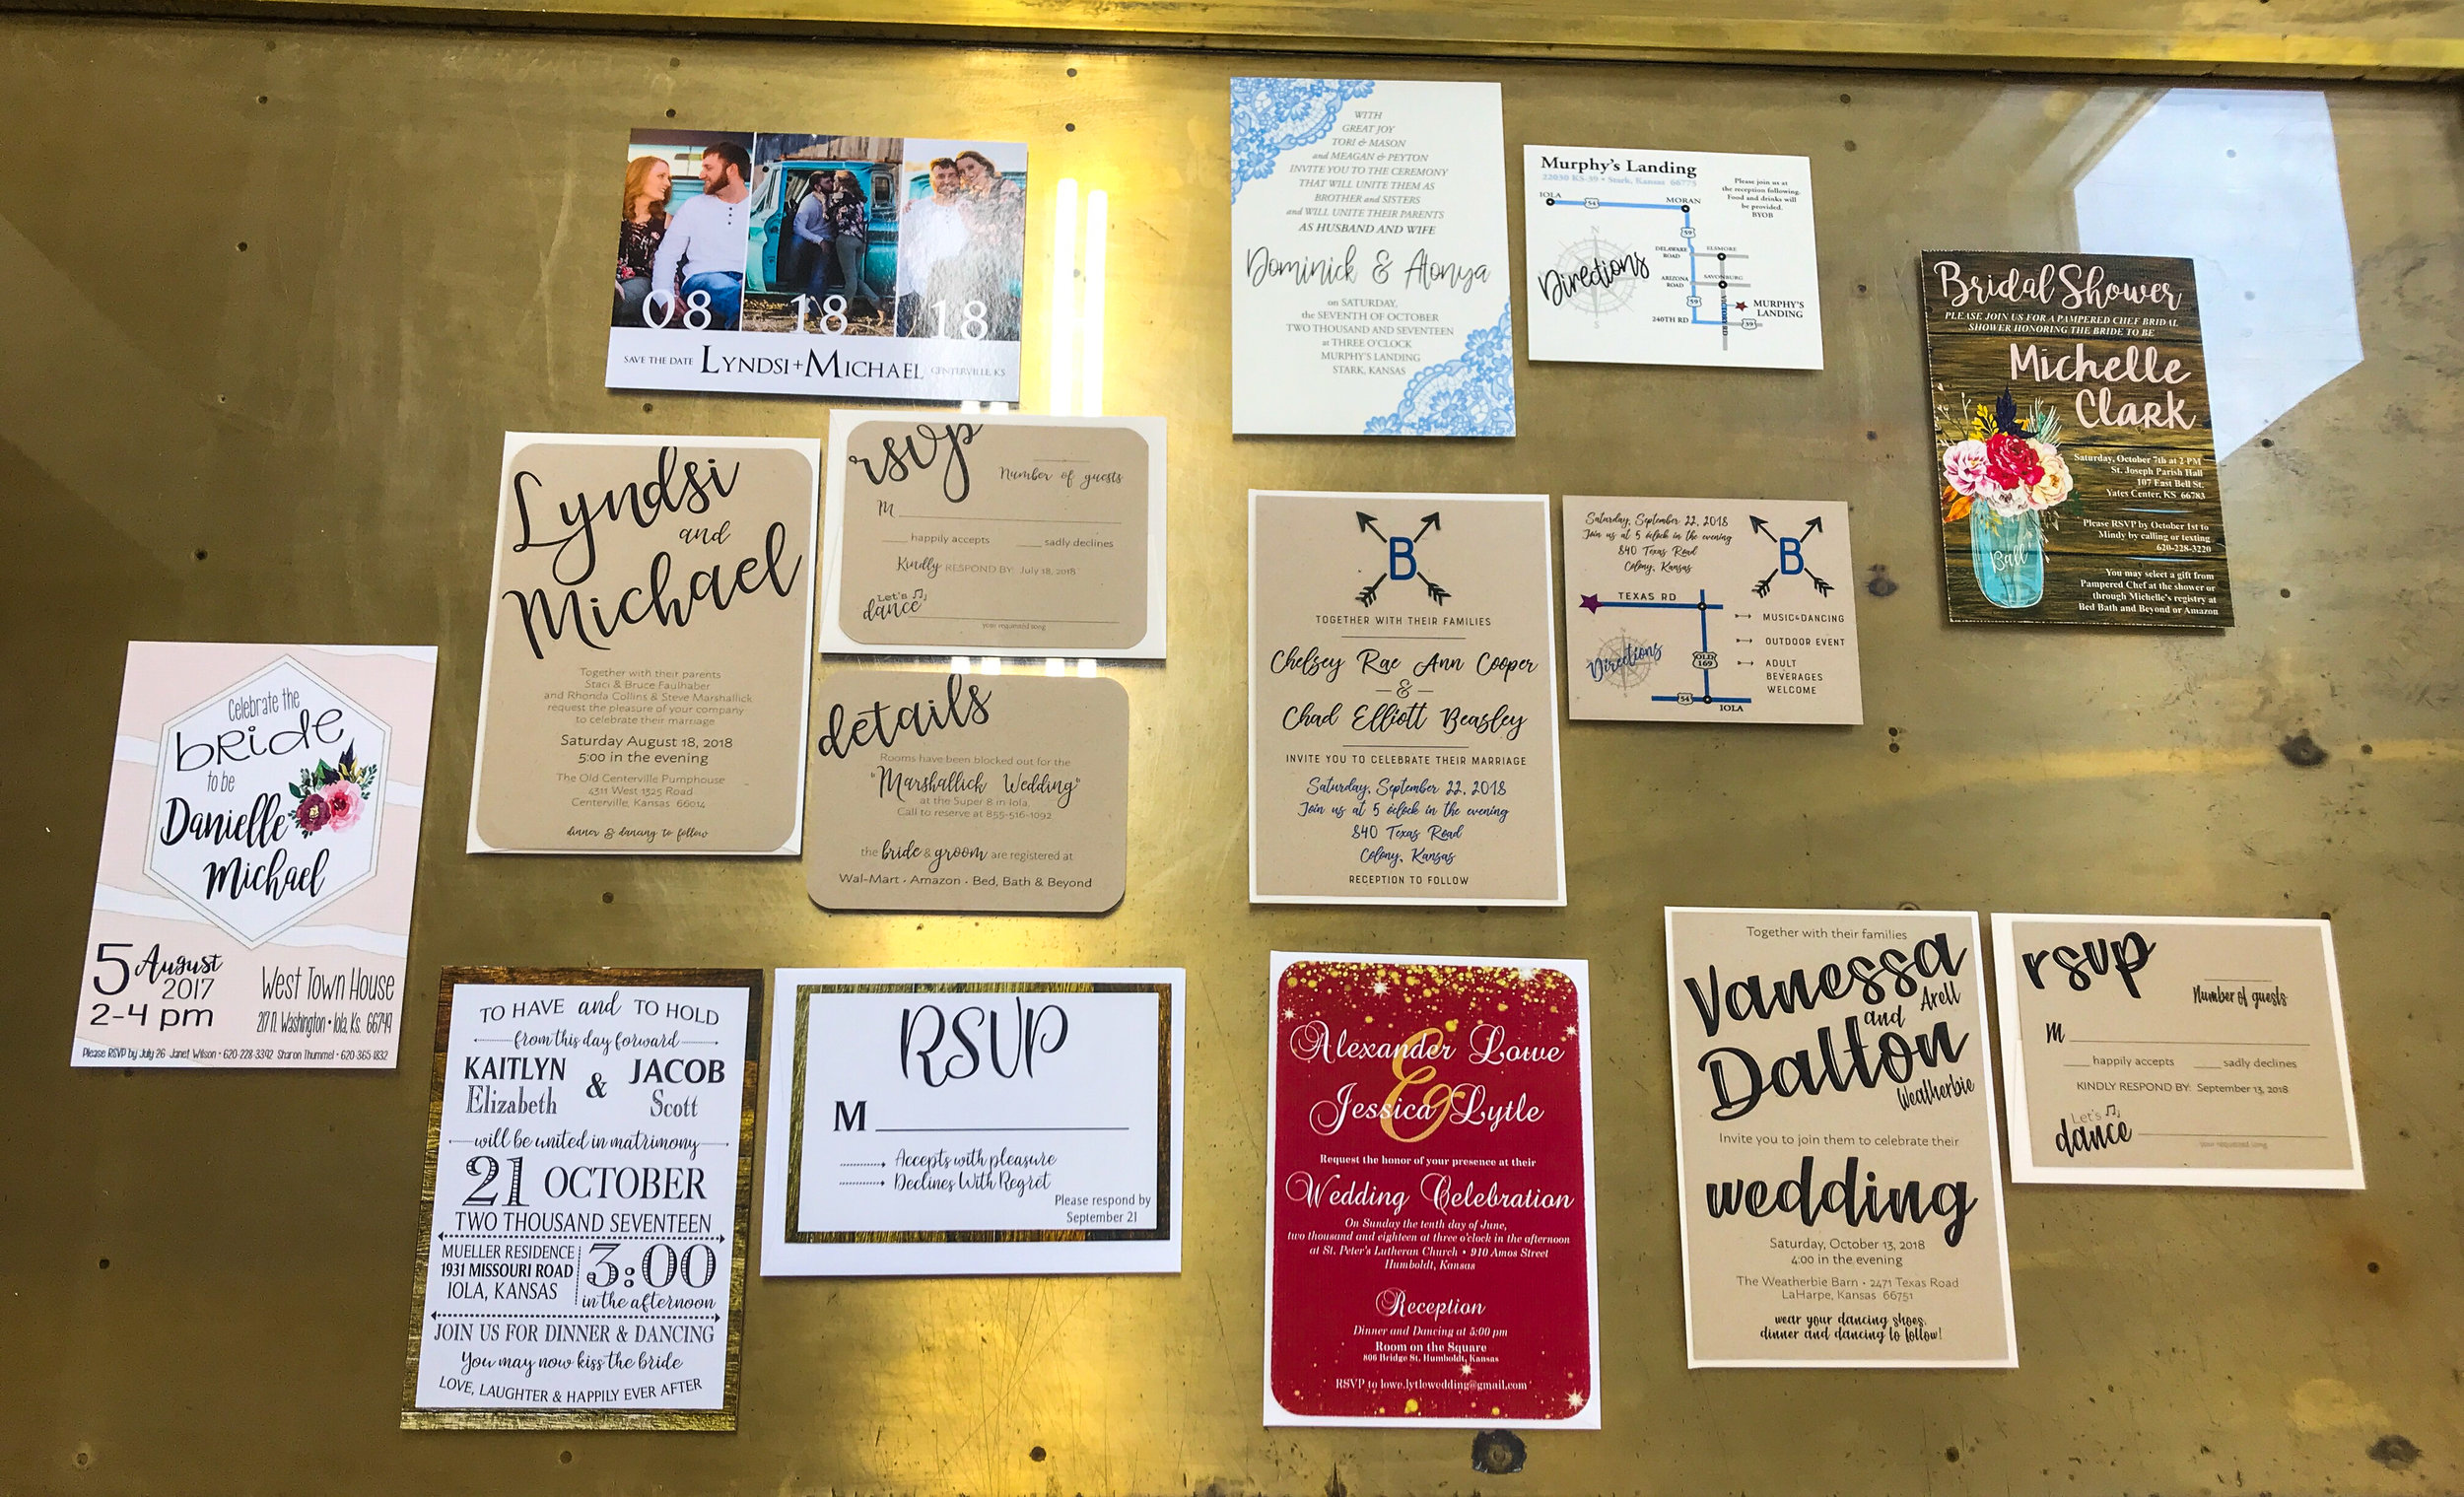 Everything Wedding - Let us be your go to from bridal shower to wedding to programs. We have you covered. Choose already designed or request your own for your special day.